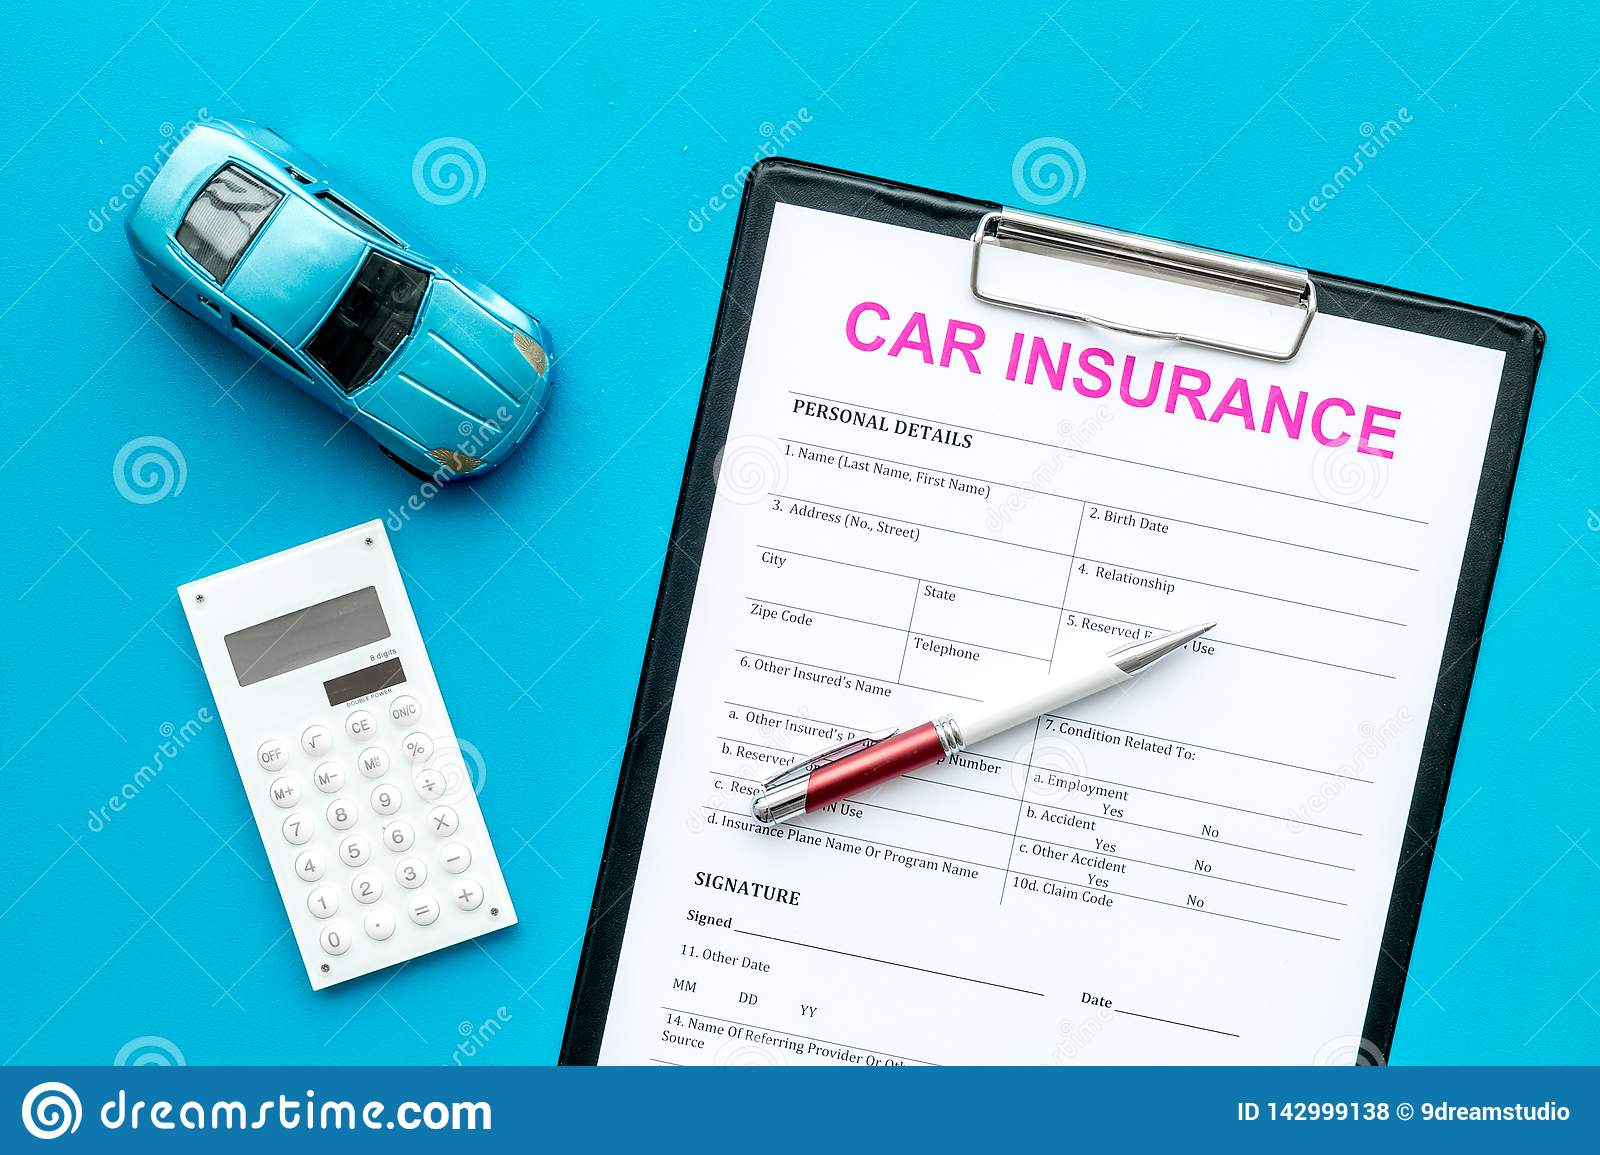 Car Insurance Concept With Form, Car Toy And Calculator On